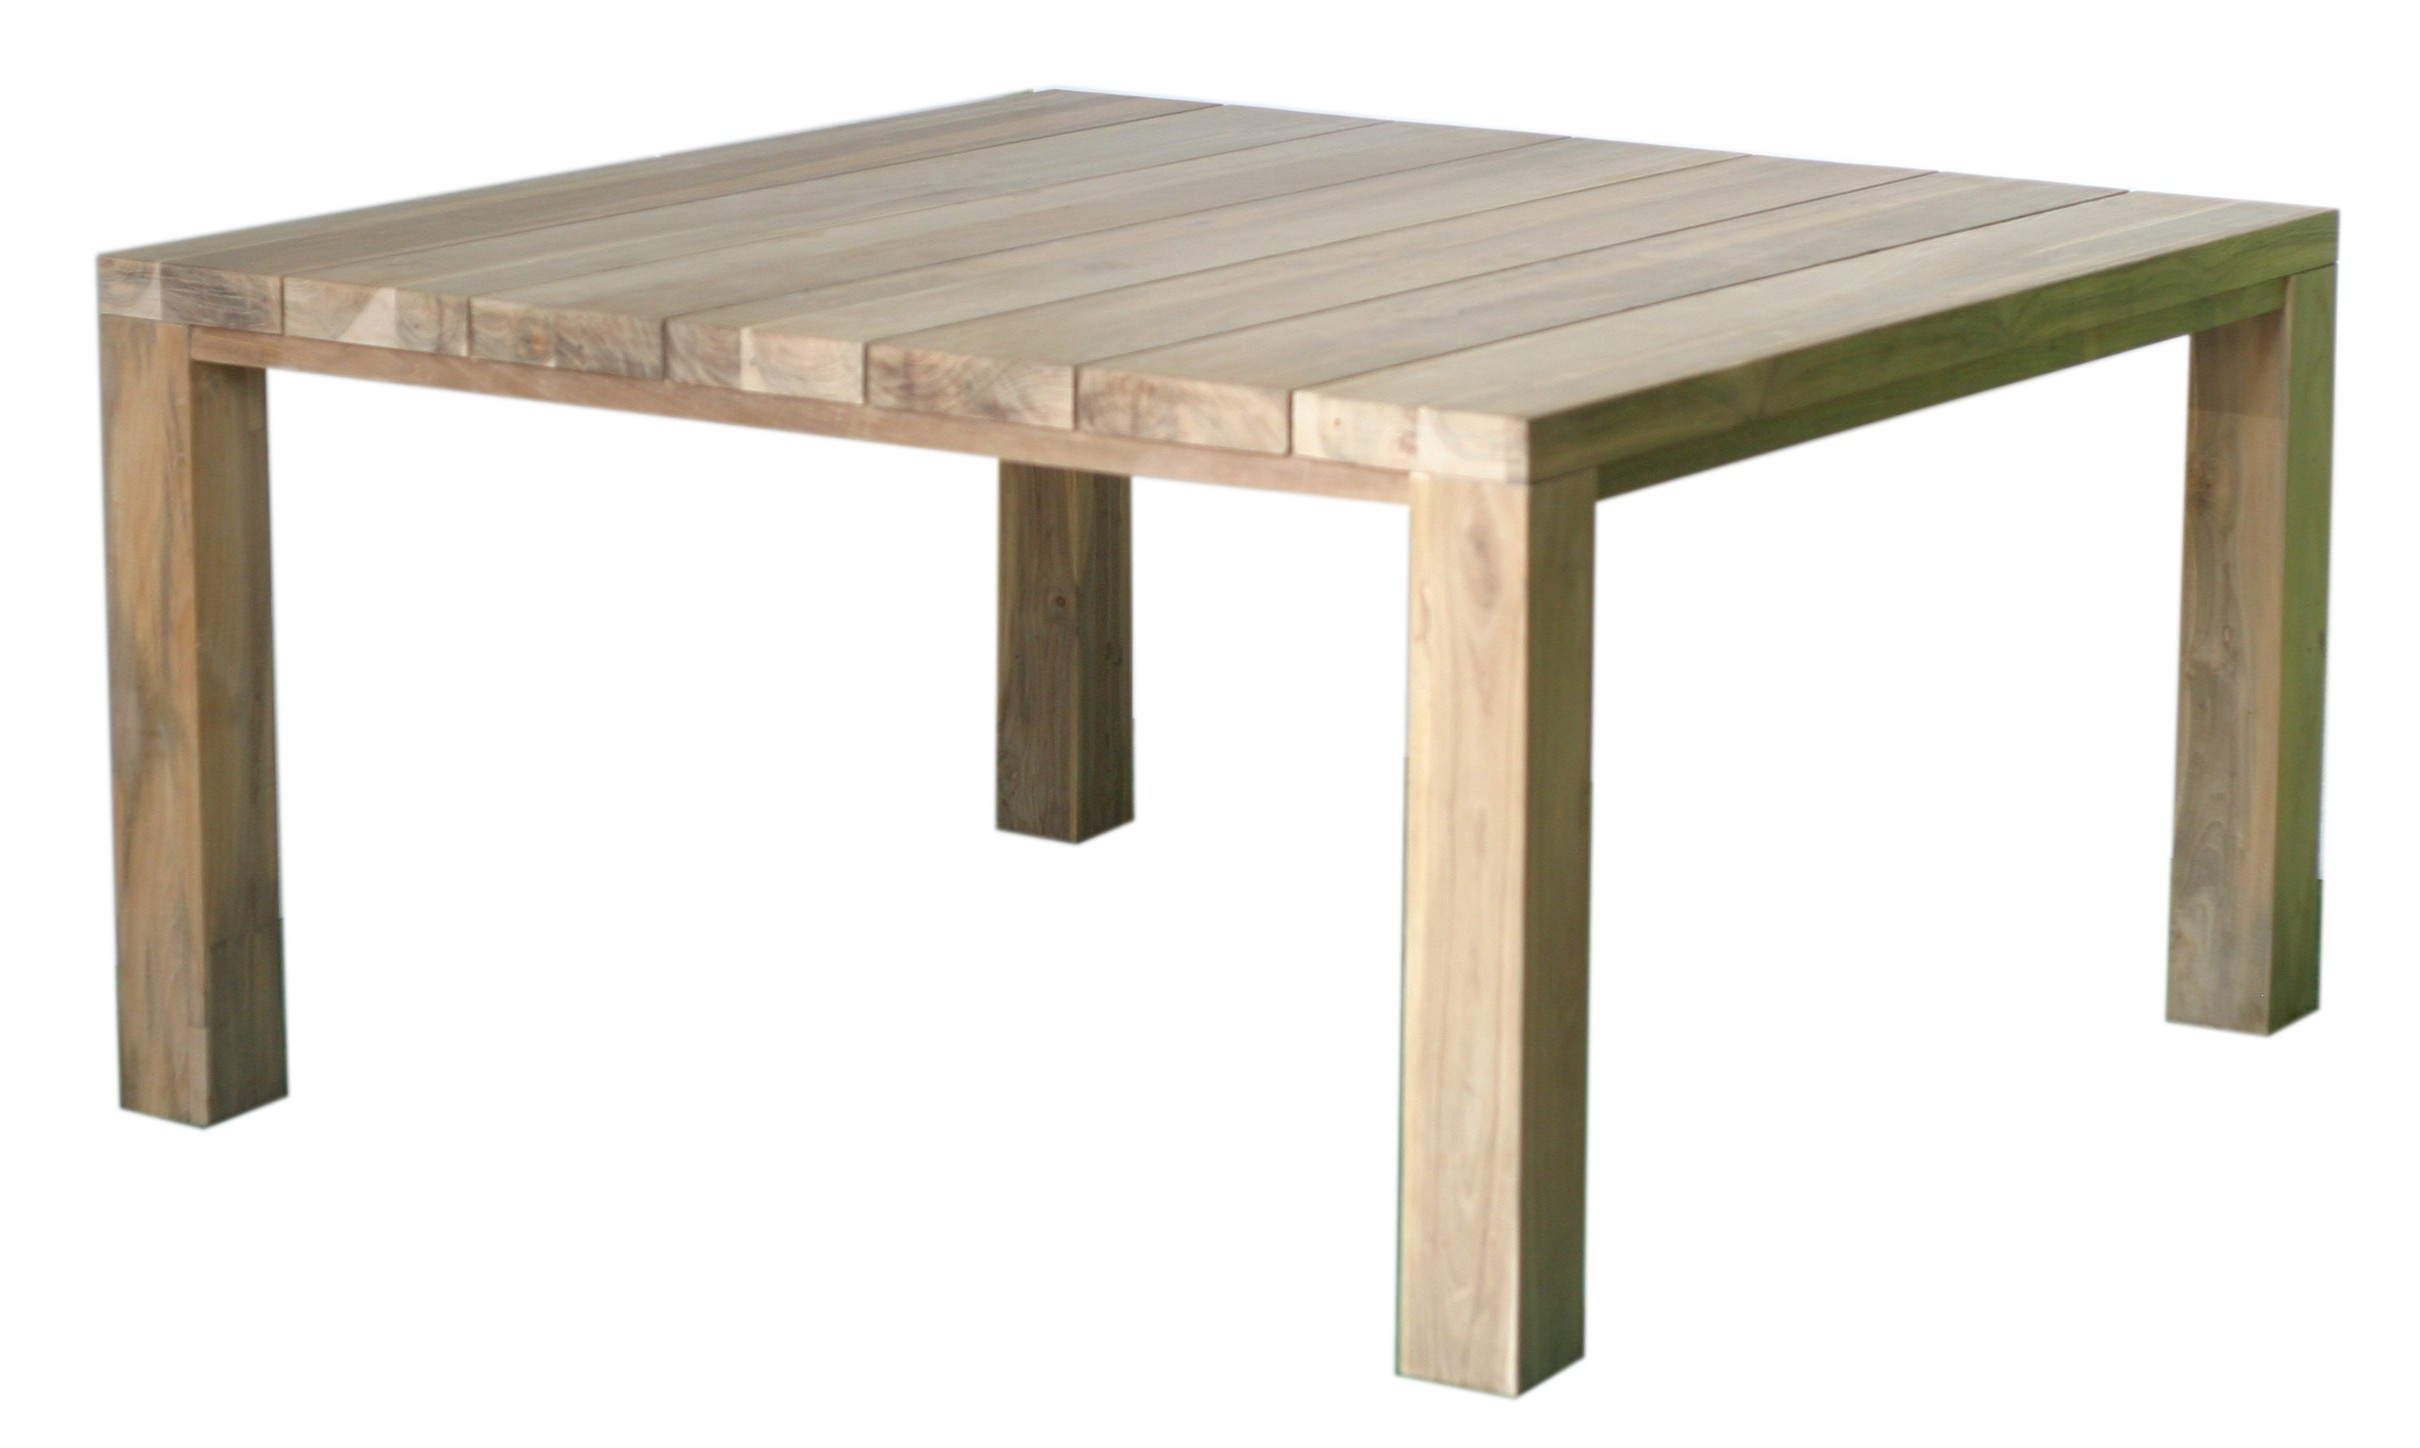 Grande table de jardin carree des id es for Table de jardin carre